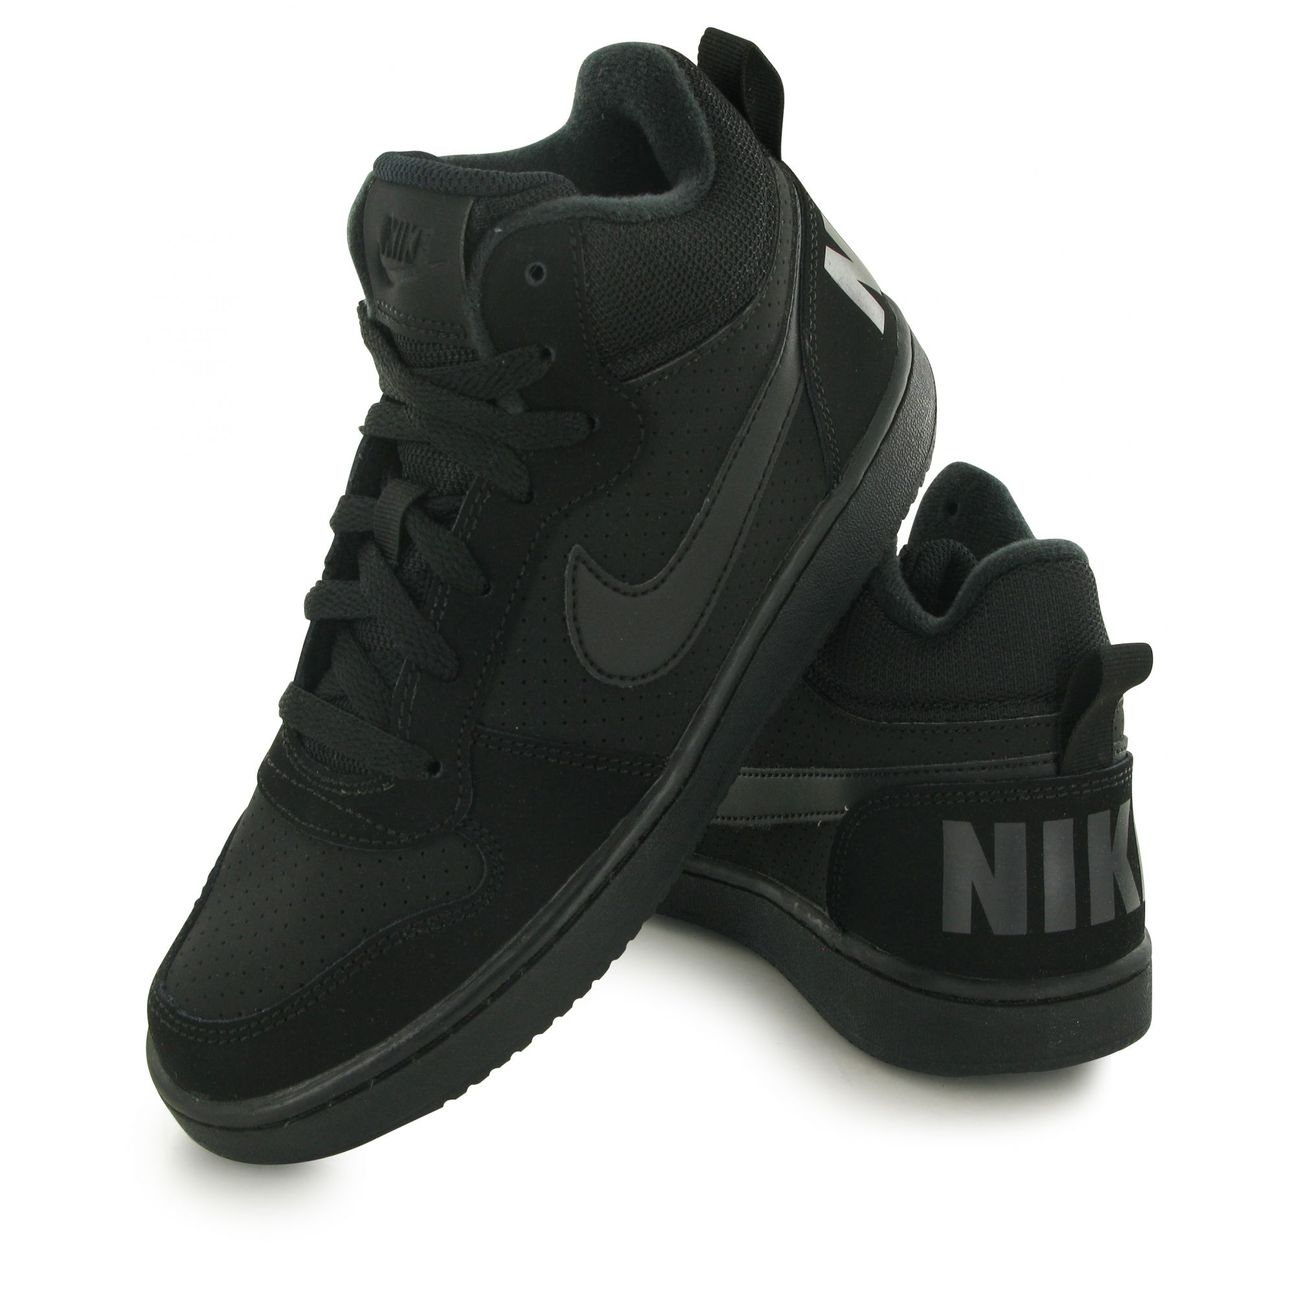 reputable site 9a5ac 276fc ... Mode- Lifestyle enfant NIKE Nike Court Borough Mid noir, baskets mode  enfant ...